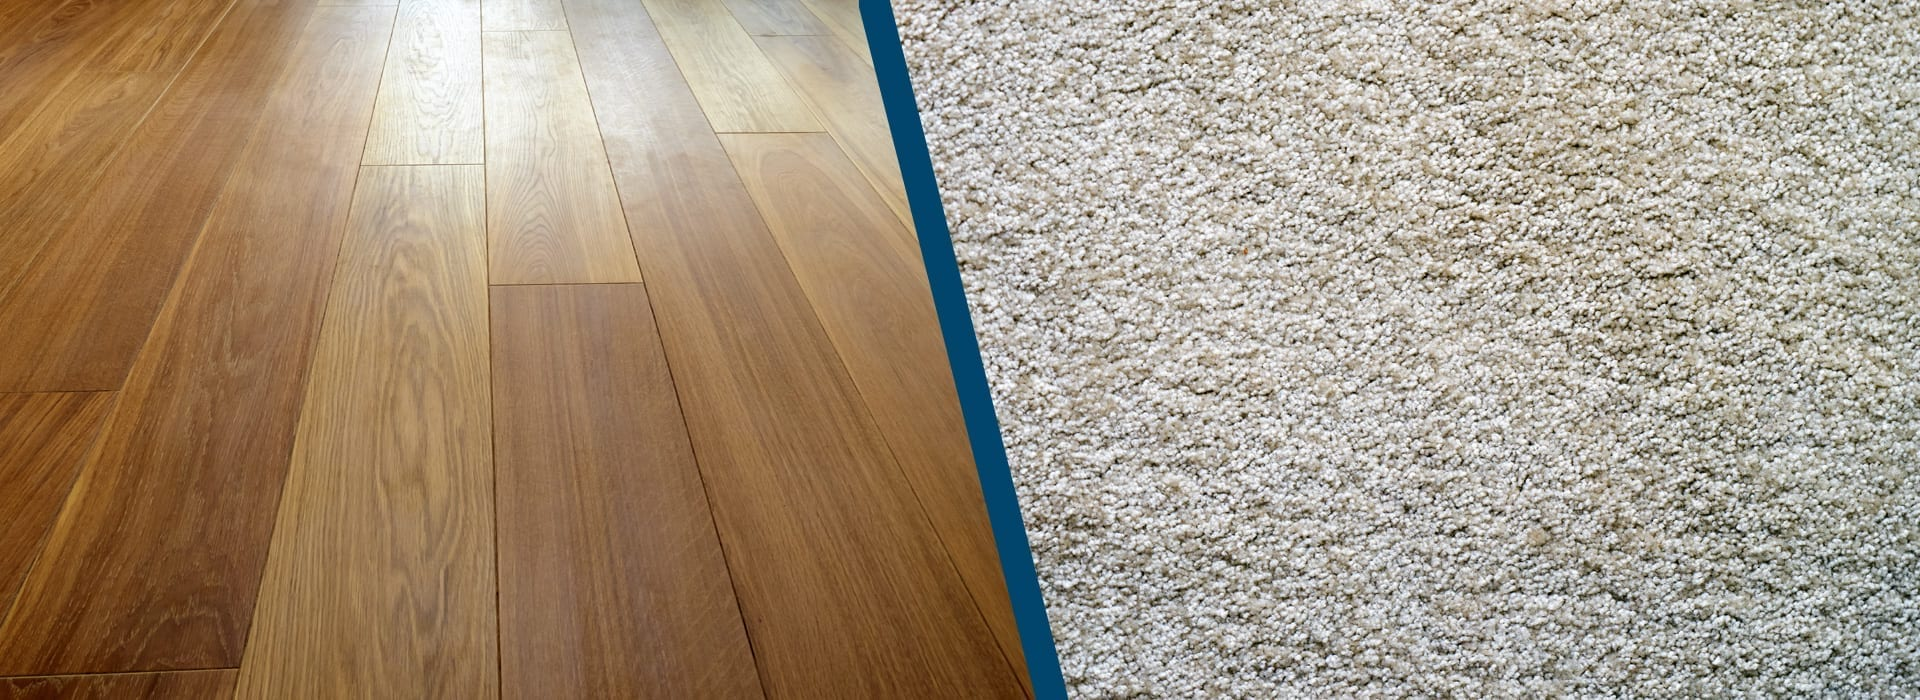 How to pick the perfect flooring option for your rec room